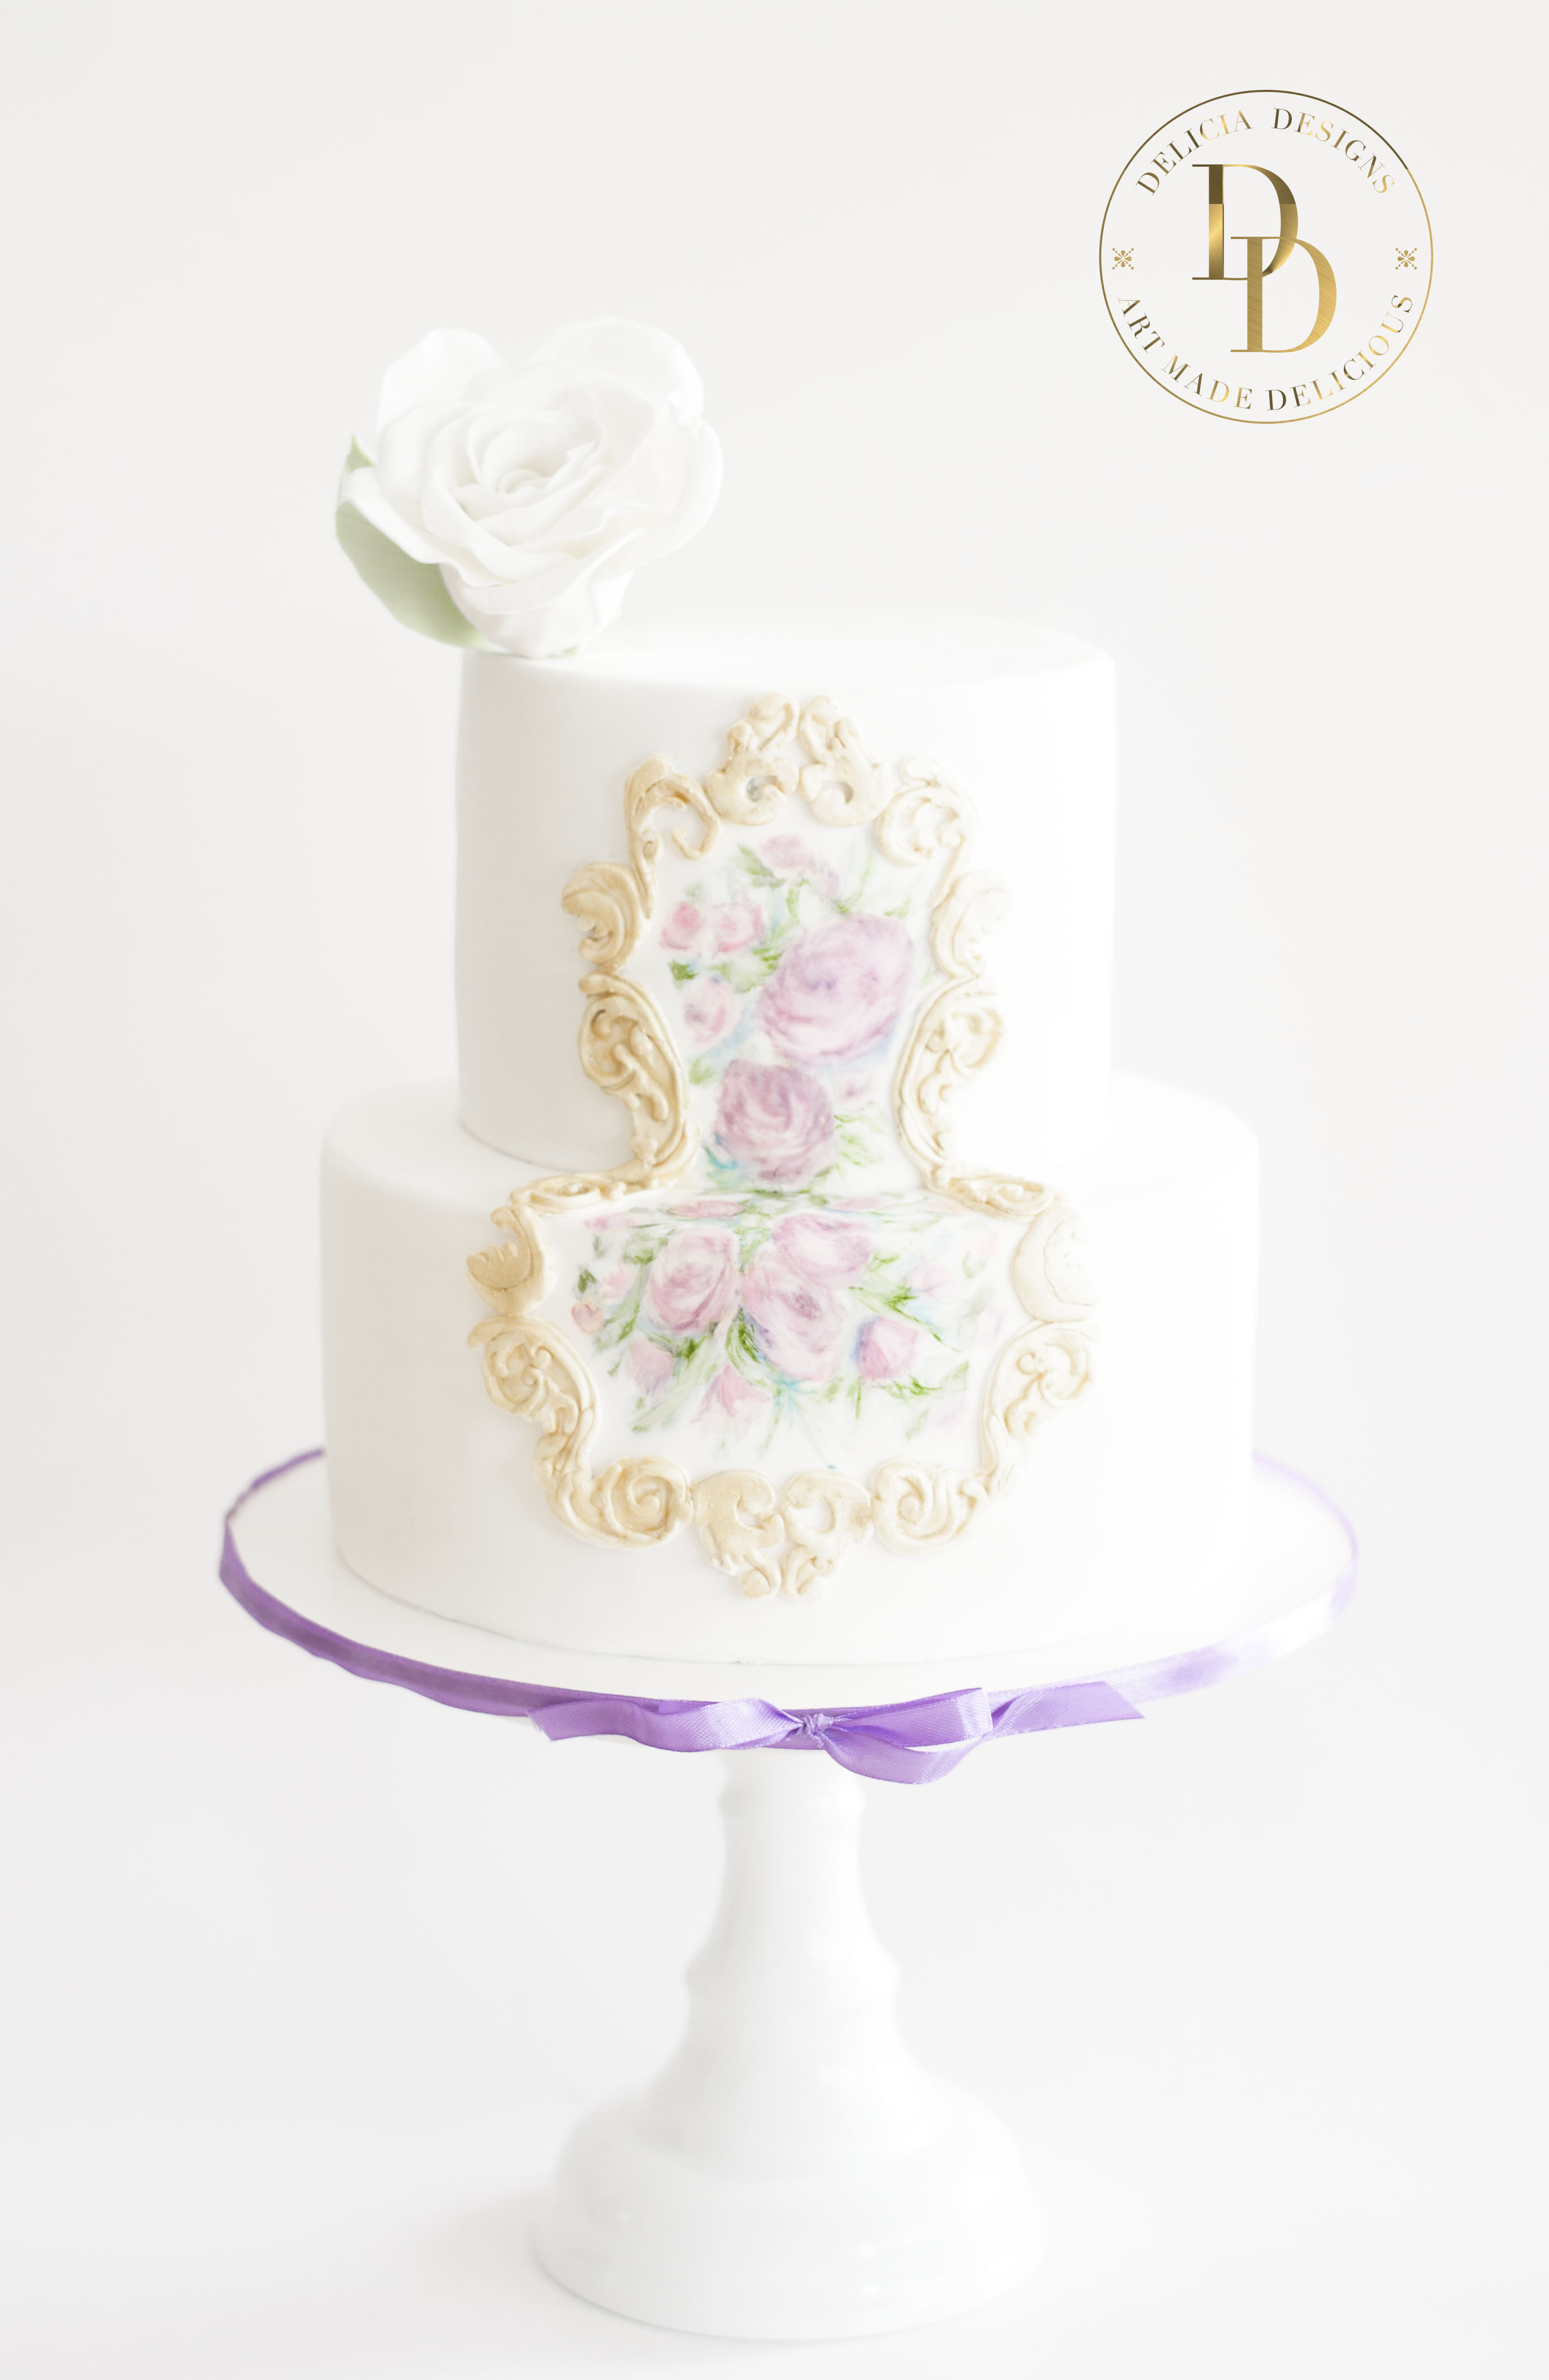 White Victorian fondant Wedding cake with gold and hand painted flower